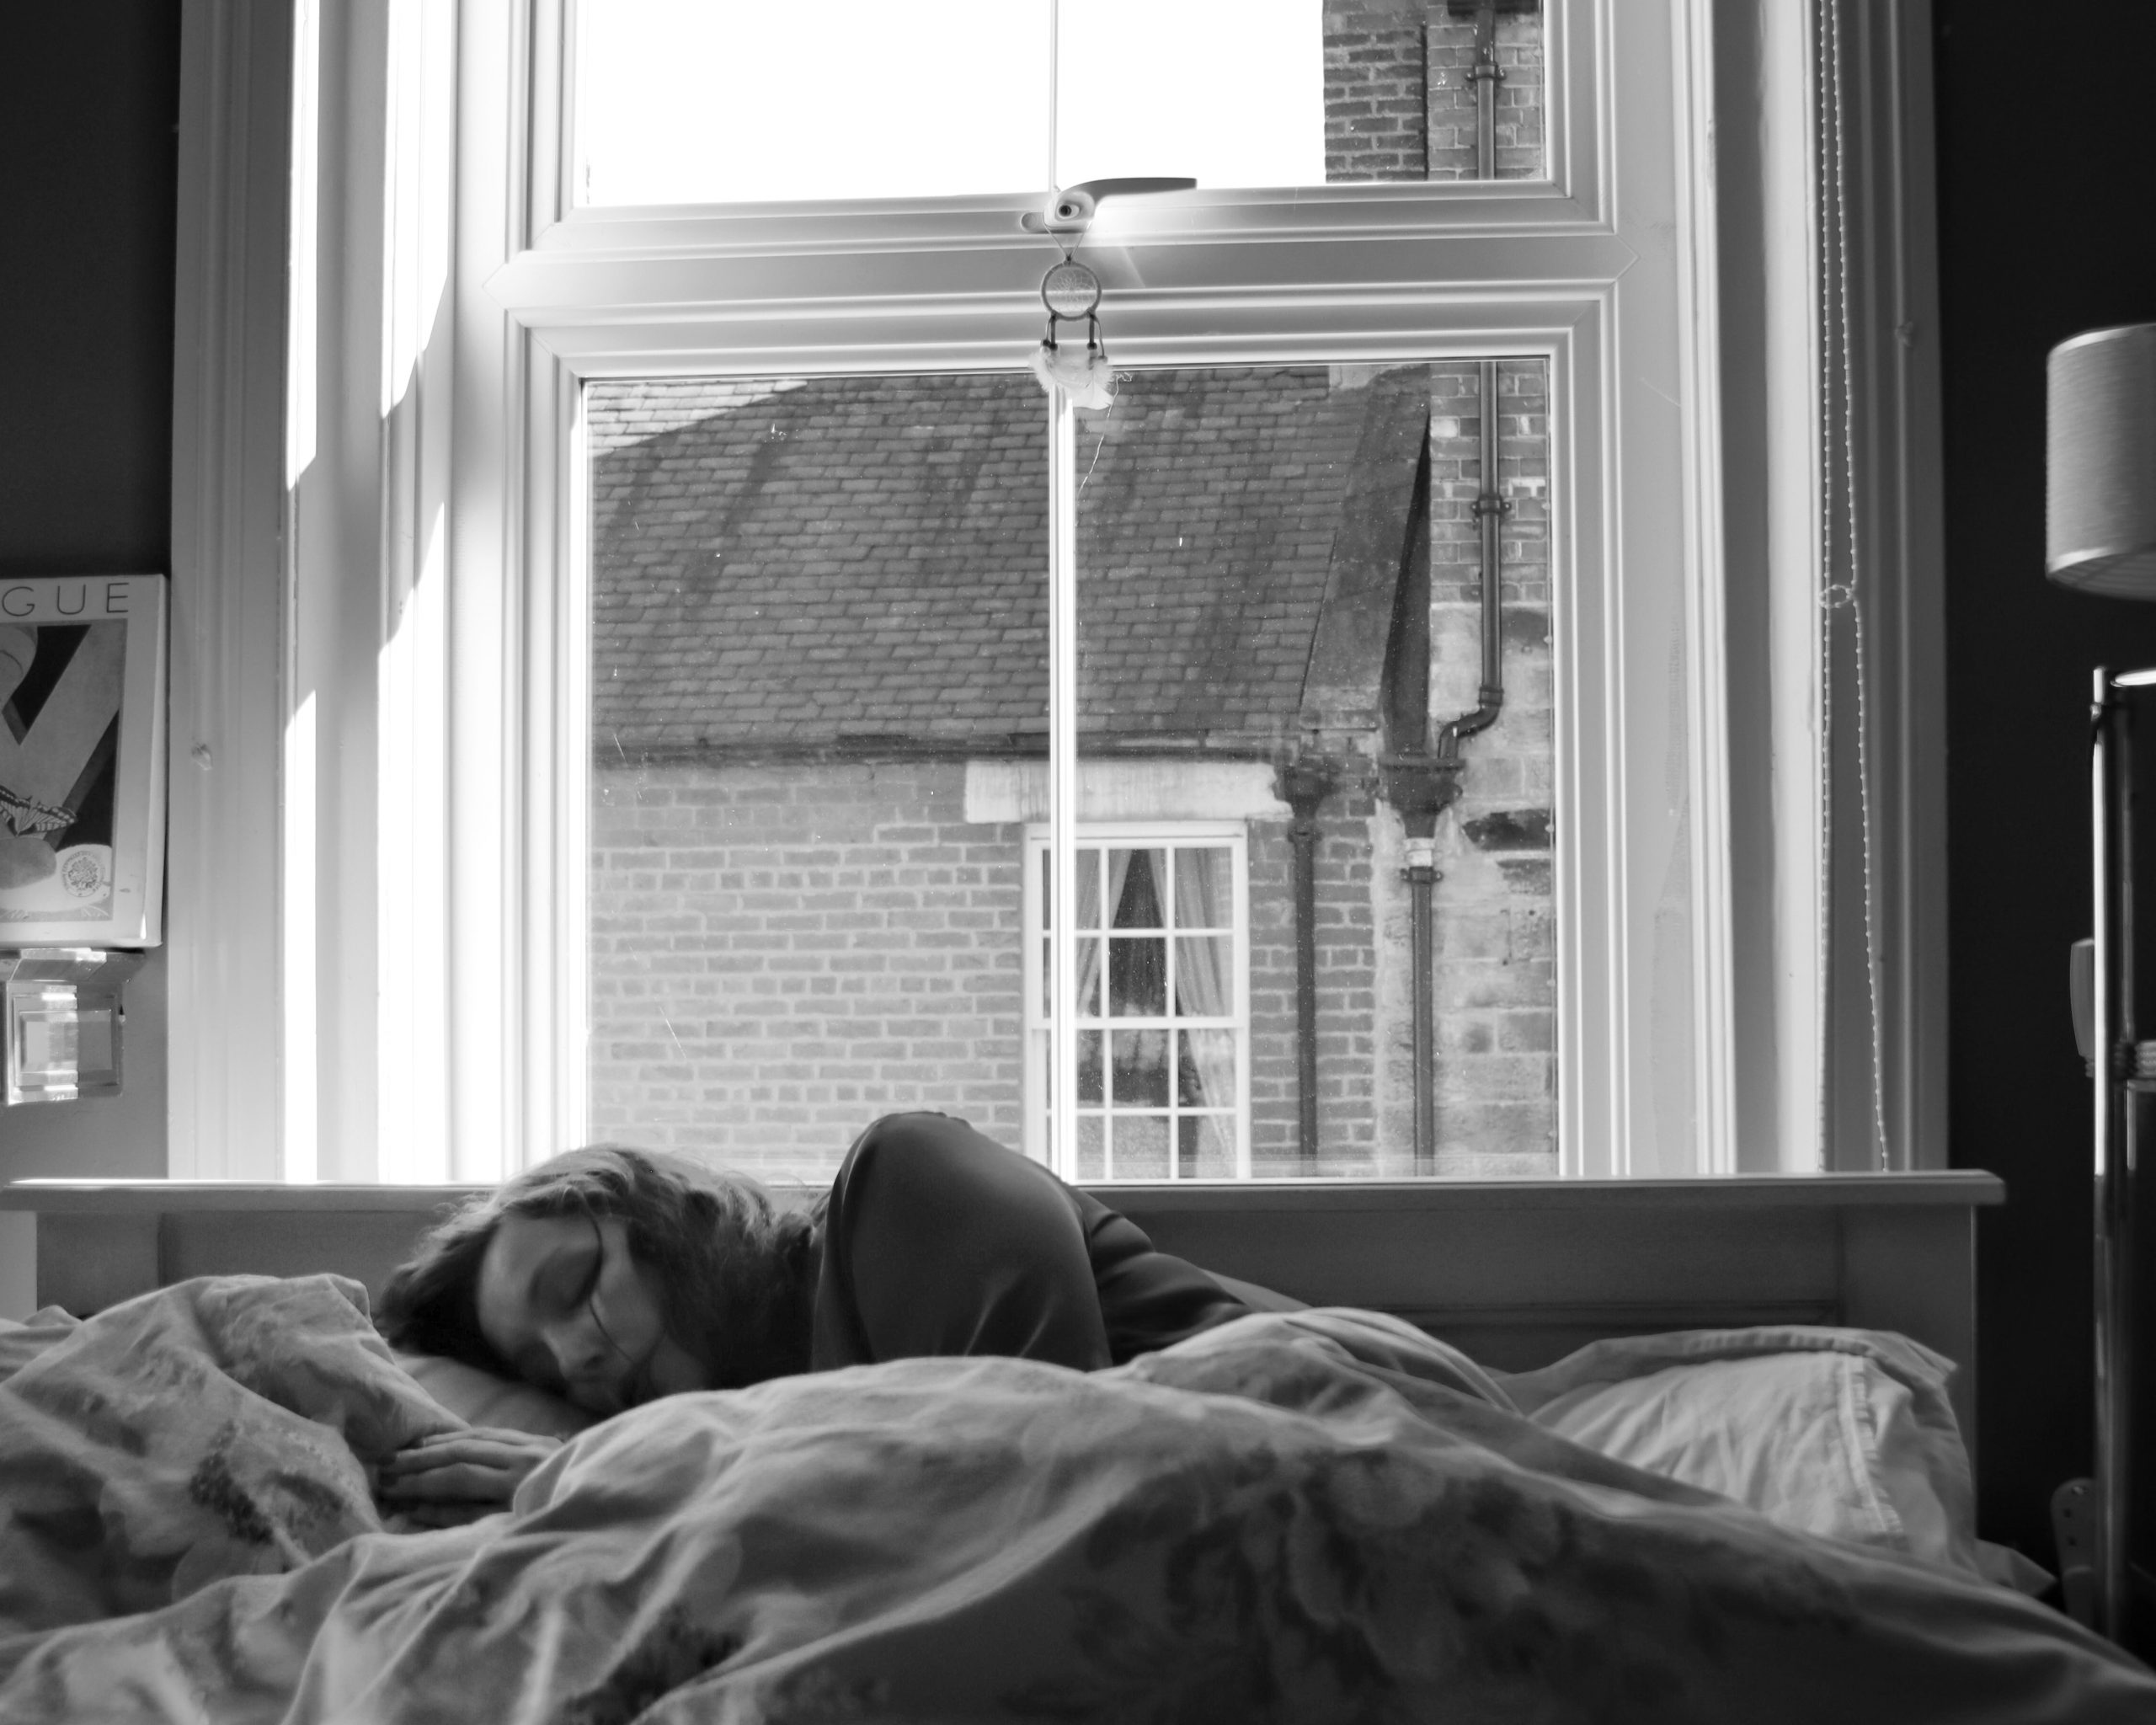 Amy lies in her bed. She has severe ME/CFS. There is a window behind the bed.